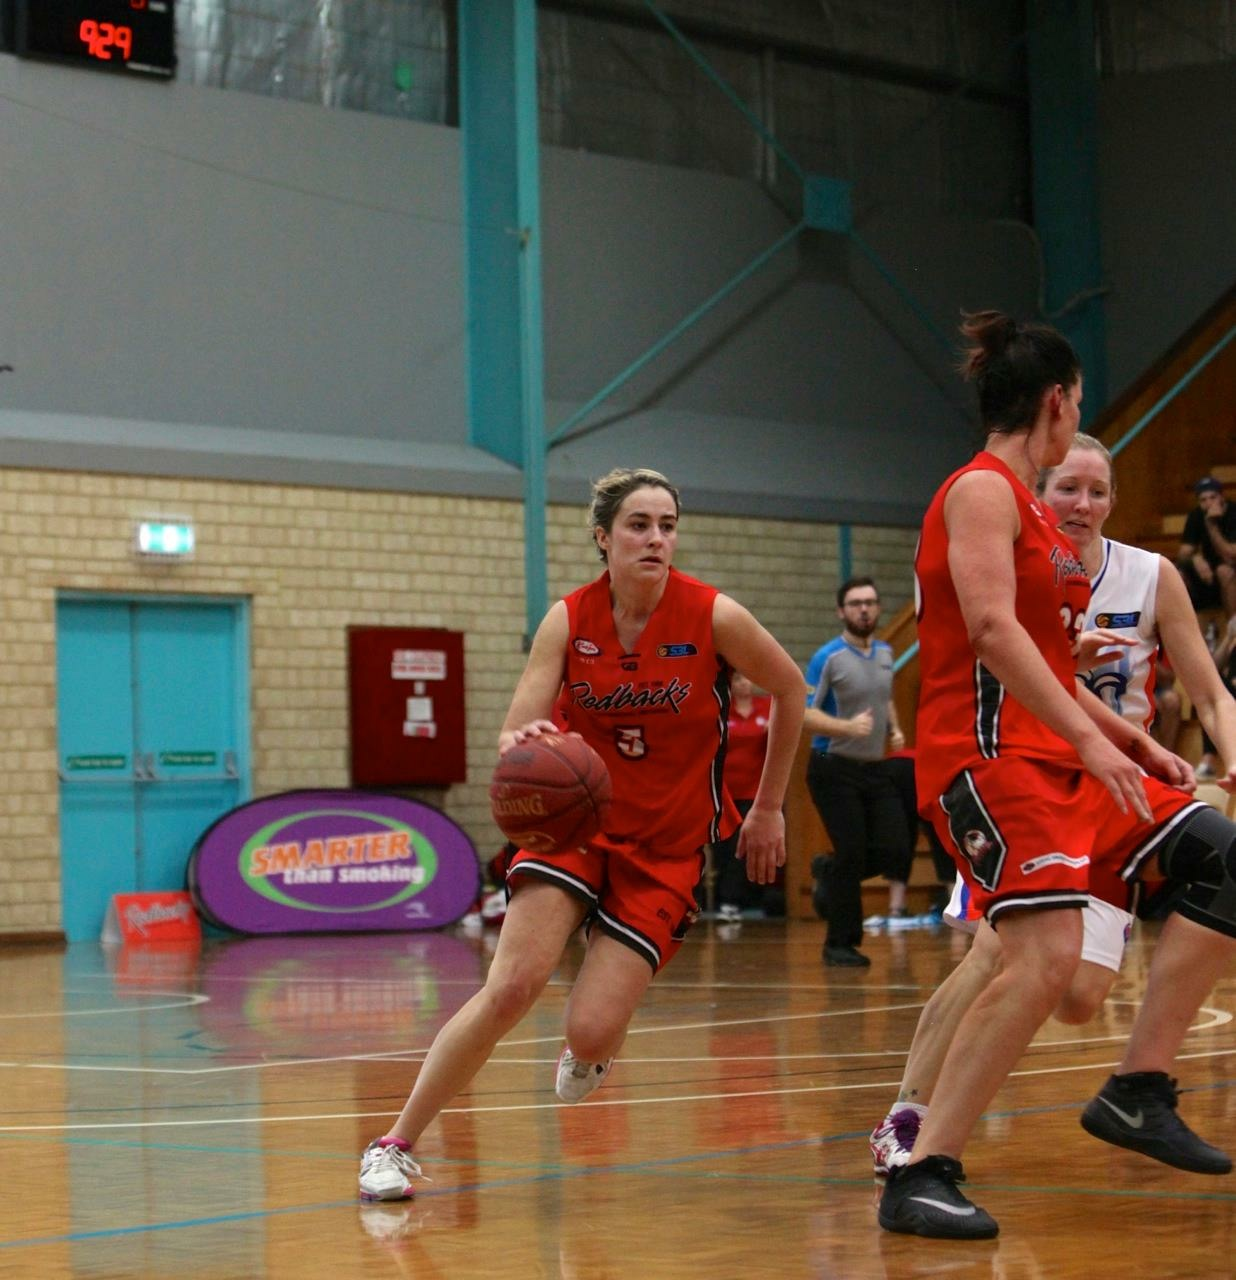 SBL: Perth Redbacks facing critical weekend